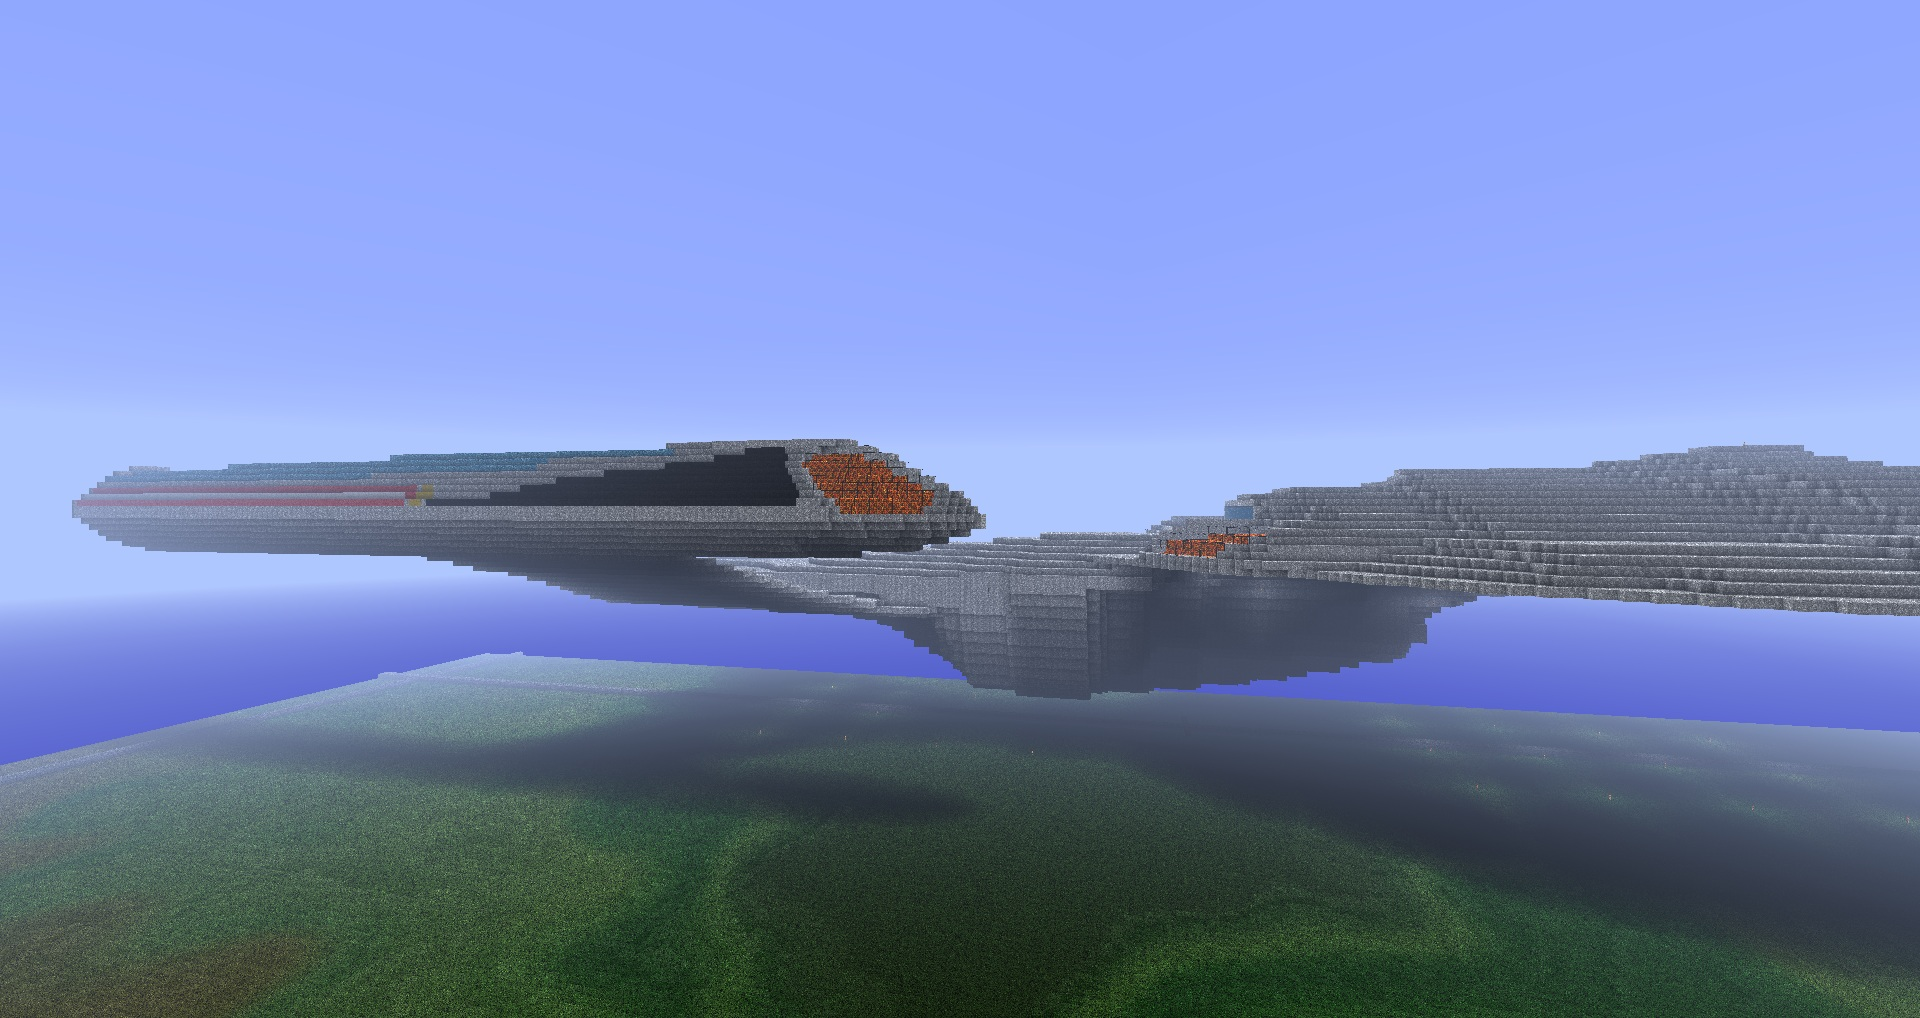 how to build the enterprise in minecraft